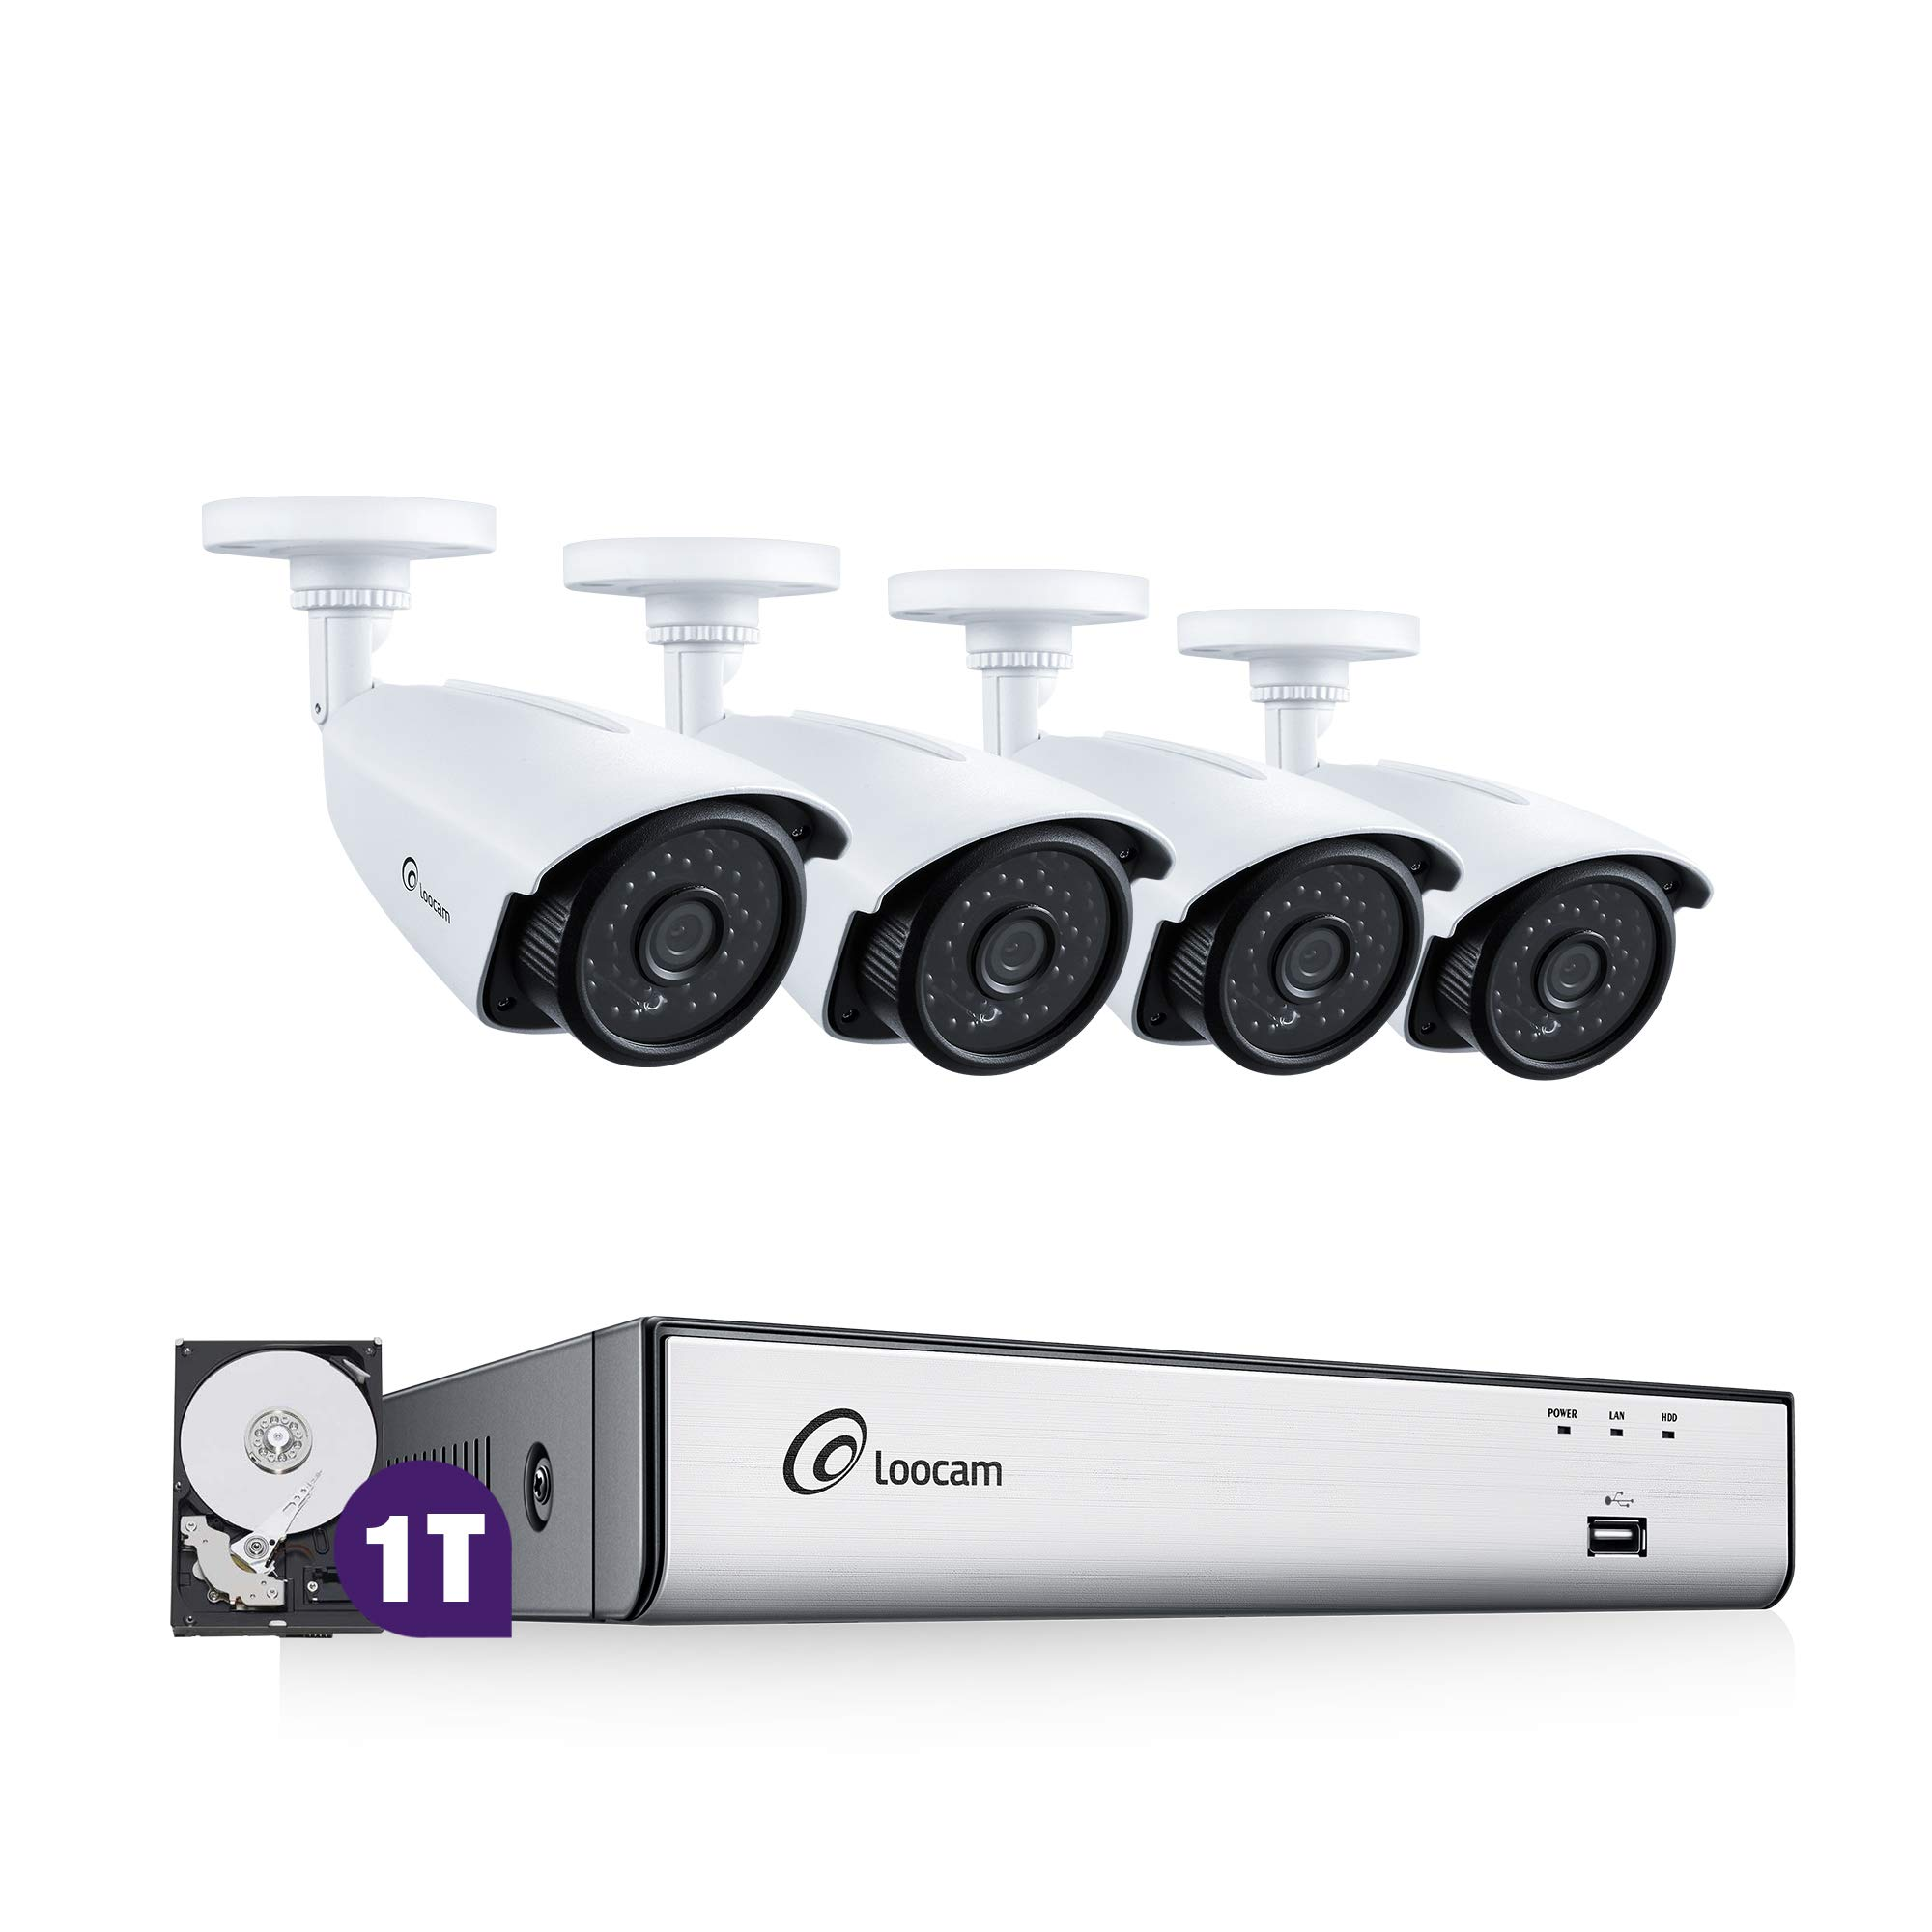 Loocam 2K 4MP 4CH Video Surveillance DVR Kit, 4 Megapixel Waterproof IP67 Bullet Security Cameras, 150Ft IR-Cut LED Night Vision, Pre-Installed 1TB HDD, Smartphone&PC Remote Access